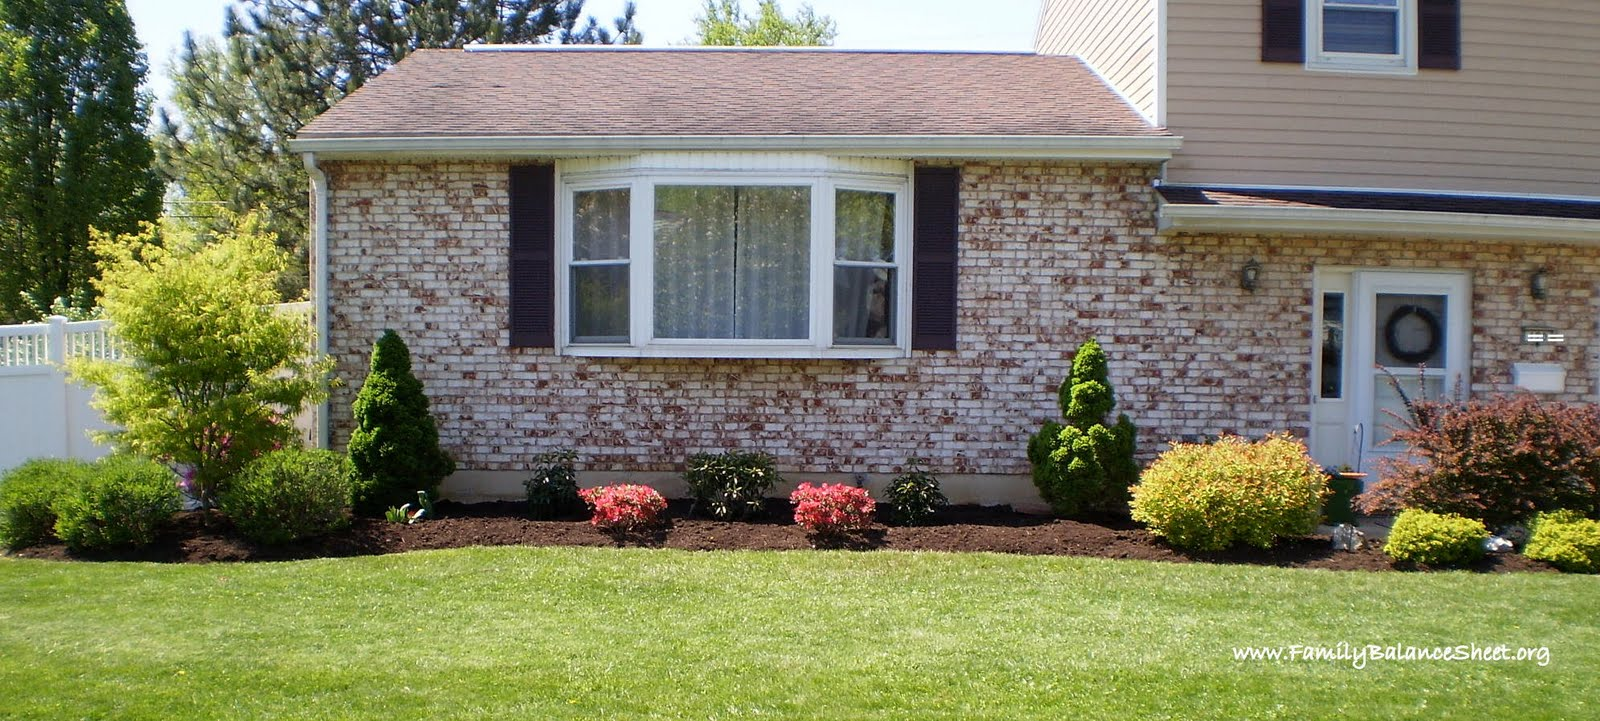 15 tips to help you design your front yard save money too for Home landscaping ideas